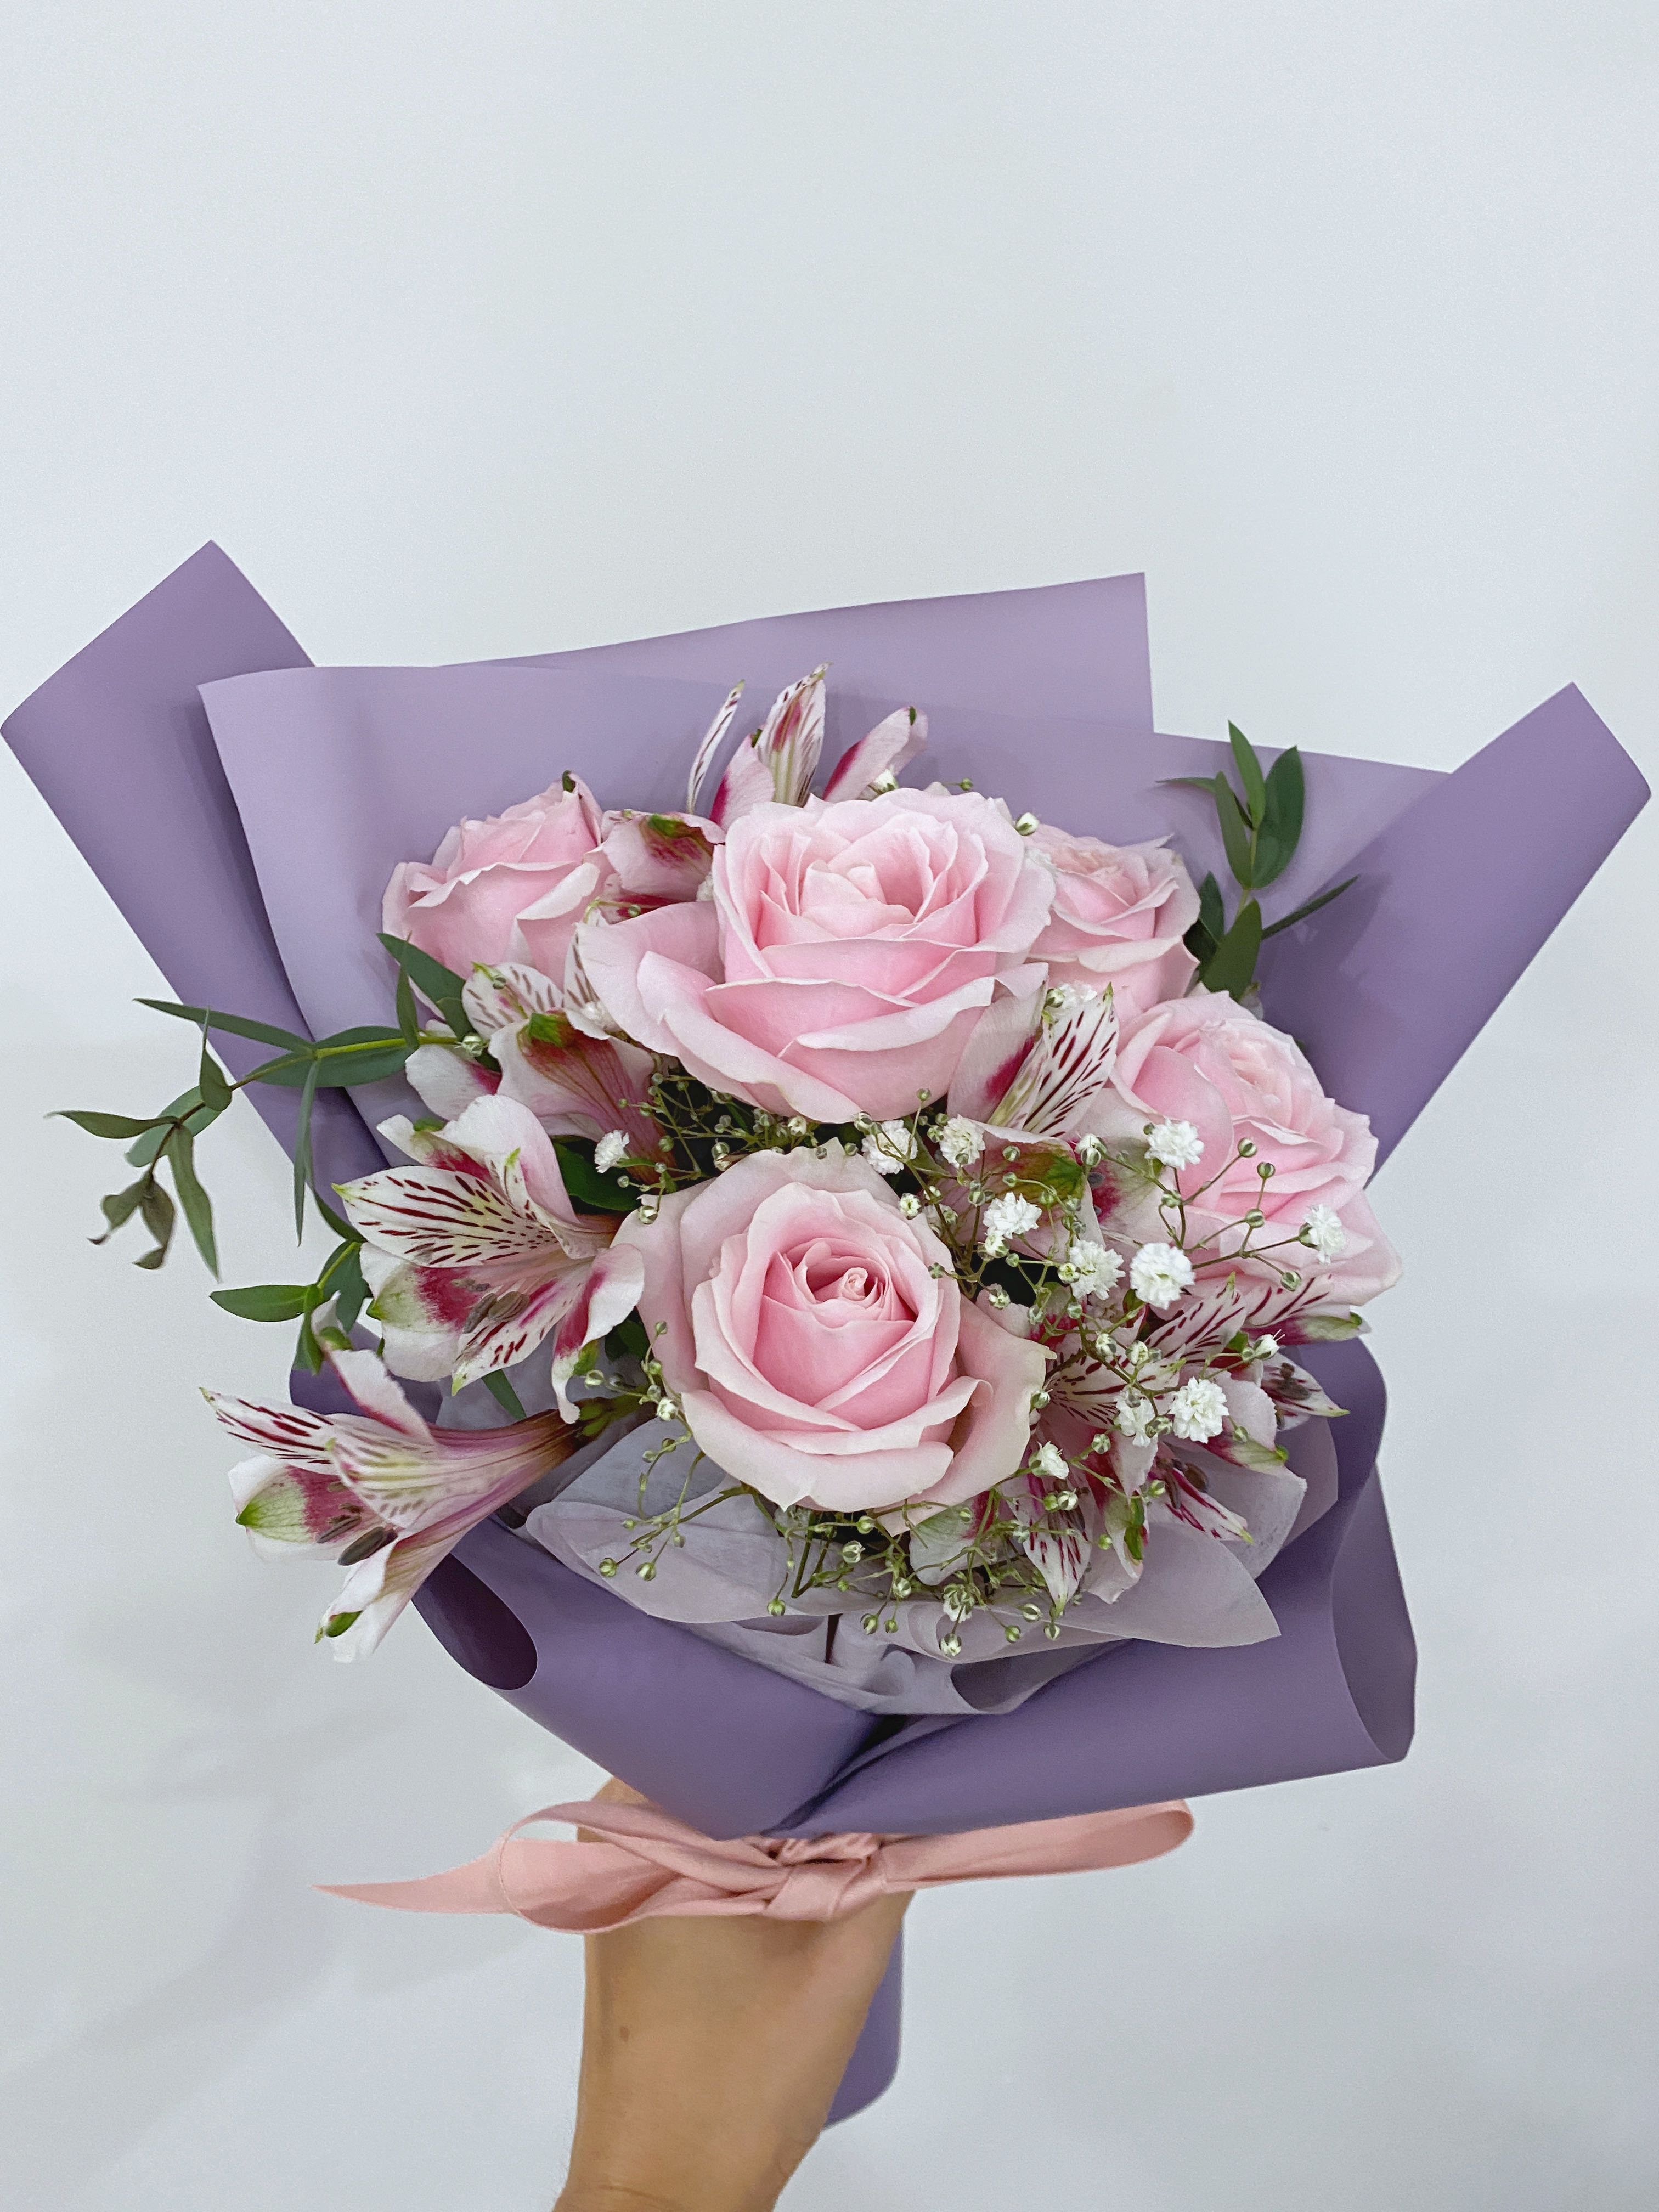 Pink Roses Fresh Flowers Bouquet Free Delivery Premium Wrapping Gardening Flowers Bouquets On Carousell